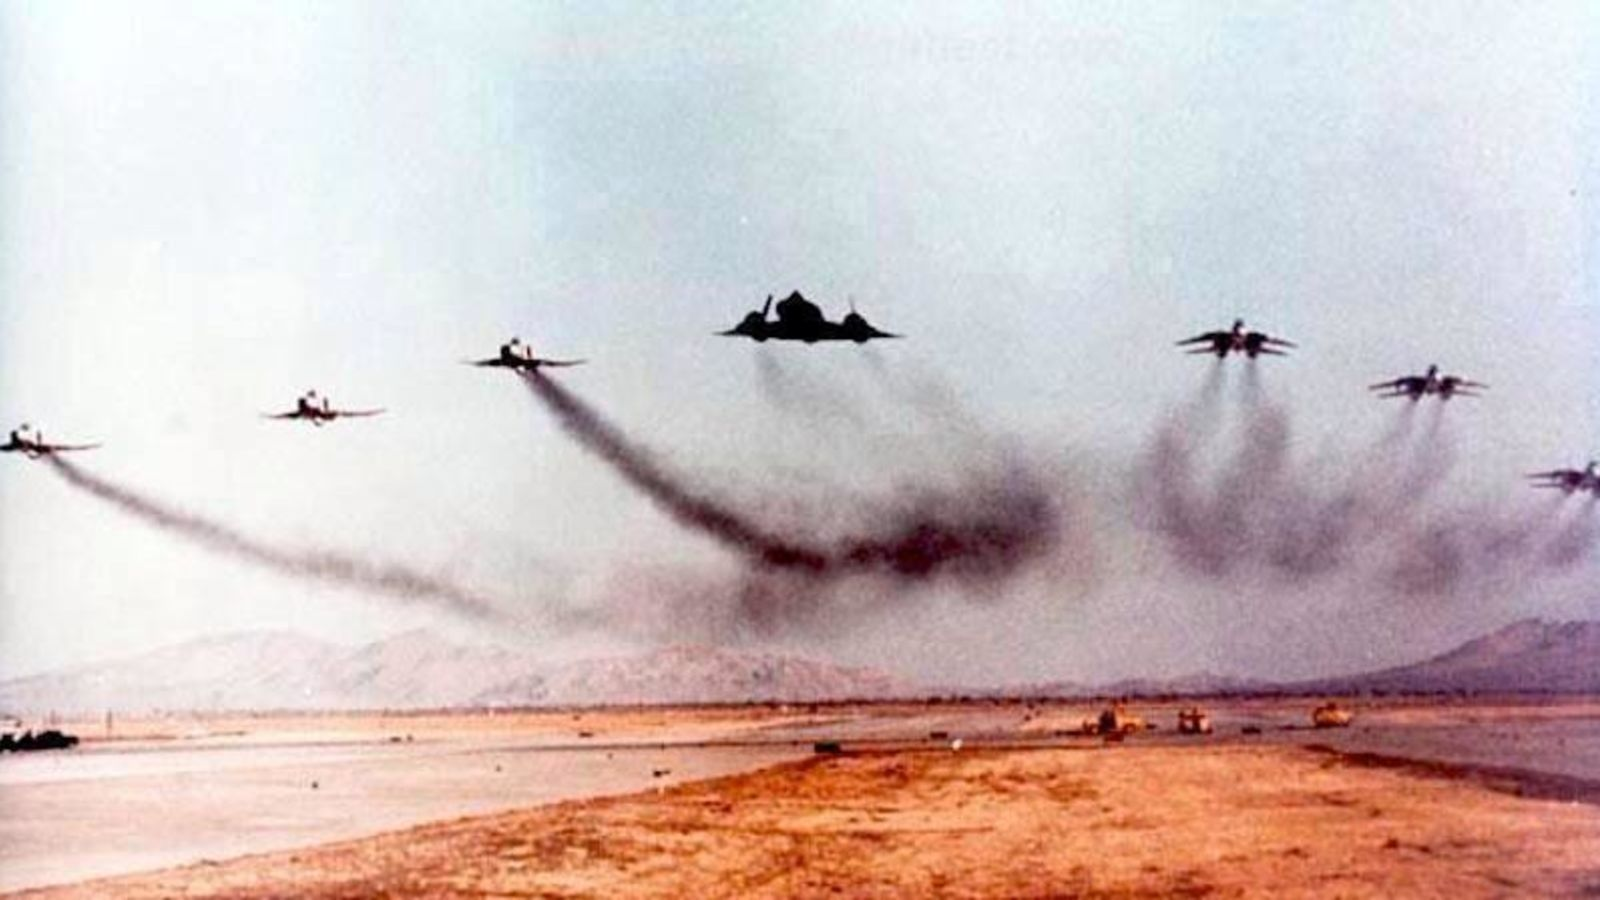 854906827f9 This has to be one of the coolest and the LOUDEST military aviation photos  in history